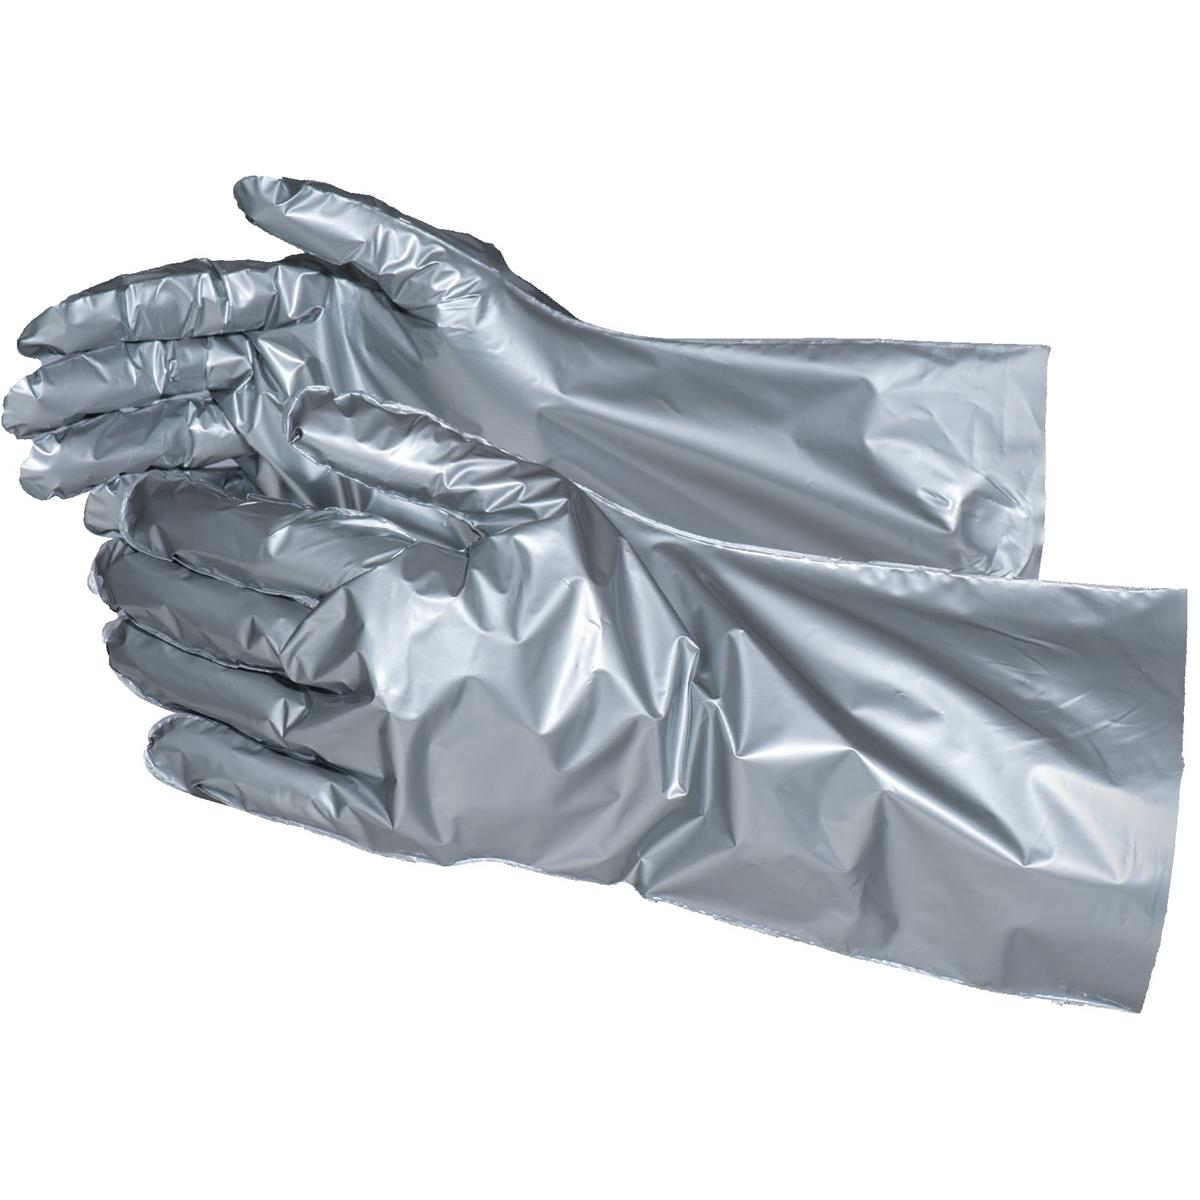 SILVERSHIELD SilverShield® Barrier Laminate, Foil-Type Safety Gloves